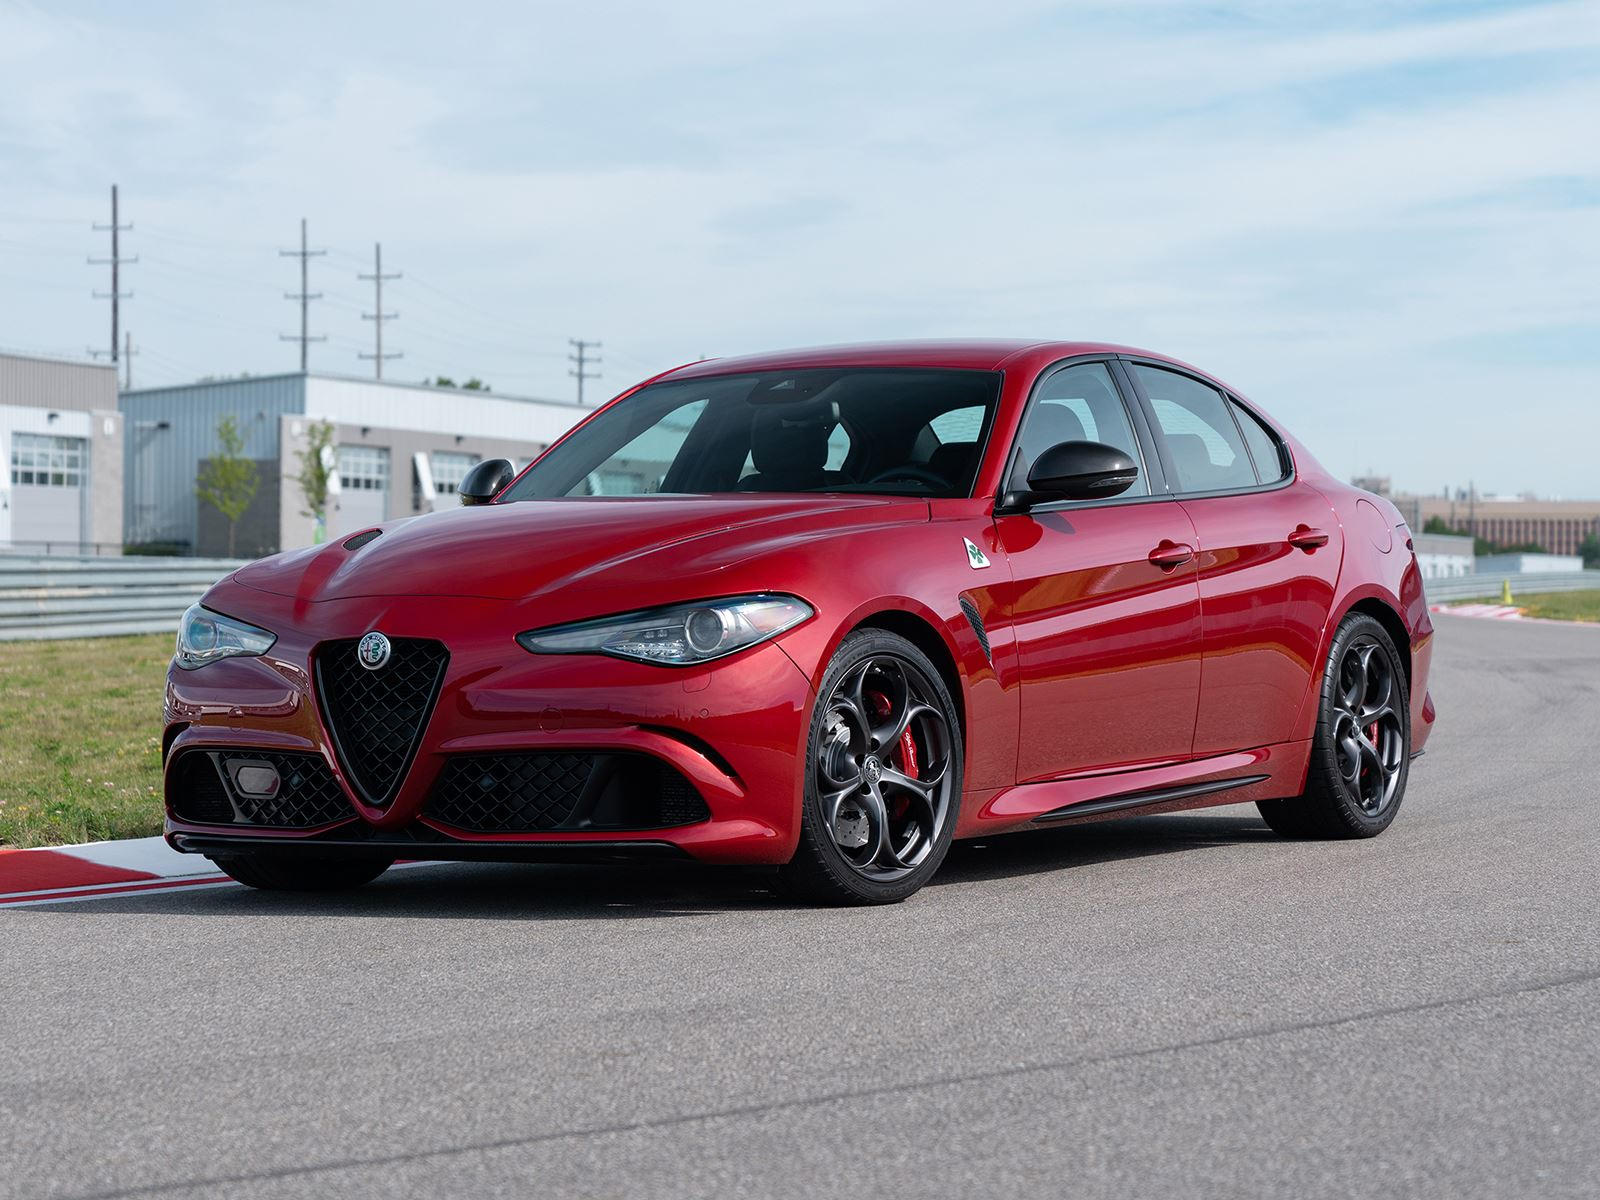 2019 Alfa Romeo Giulia Arrives With New Sporty Styling Packages Carbuzz